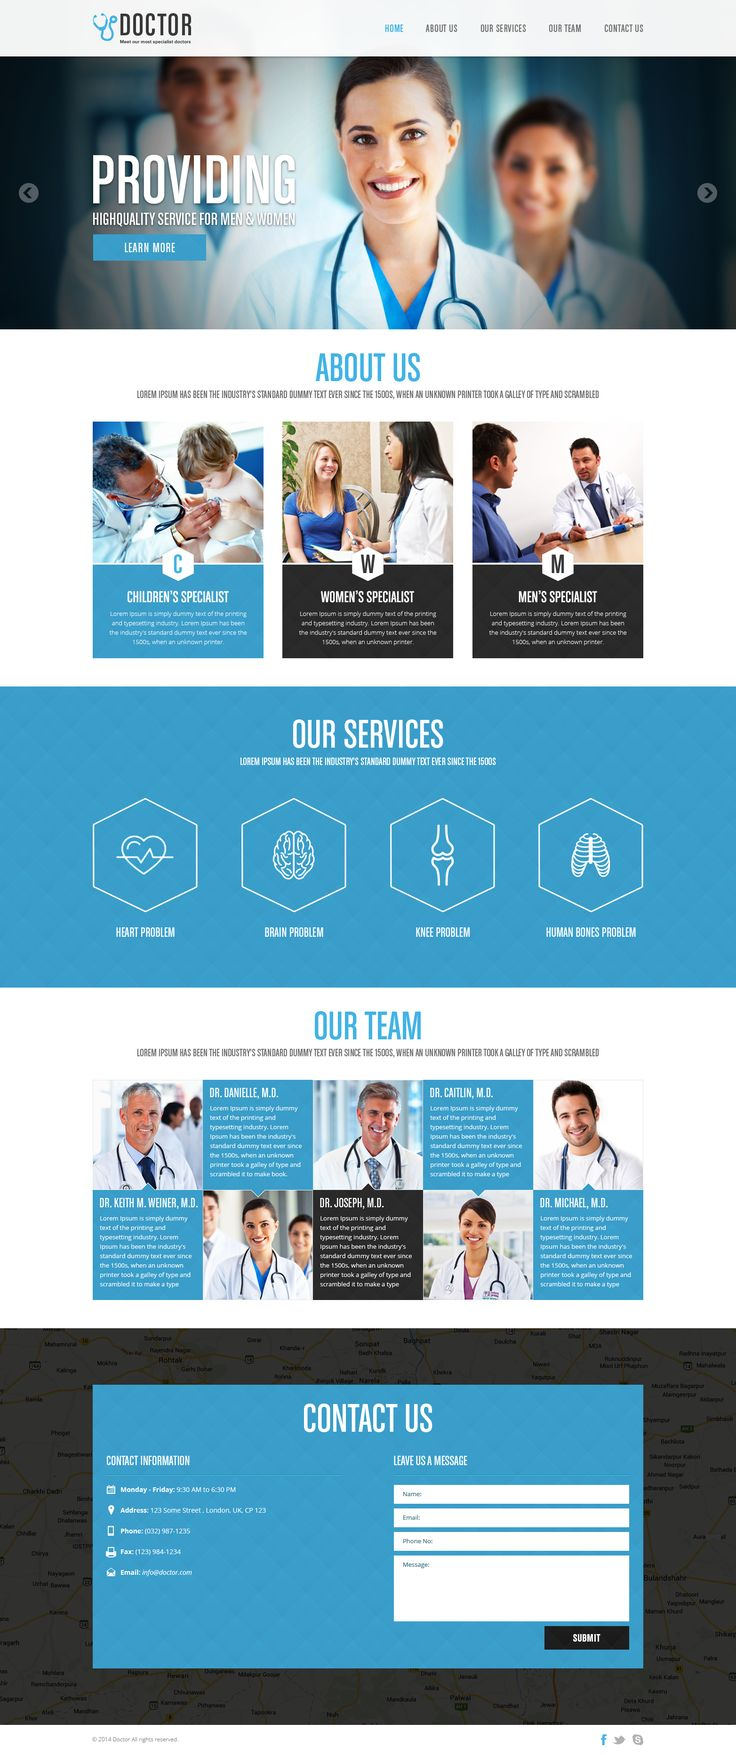 A very simple free PSD template for medical industry. Suitable for simple websites, and can be used for small medical business like dentistry or urgery clinics. Download link: http://graphicsbay.com/item/Medical%20free%20PSD%20template/32